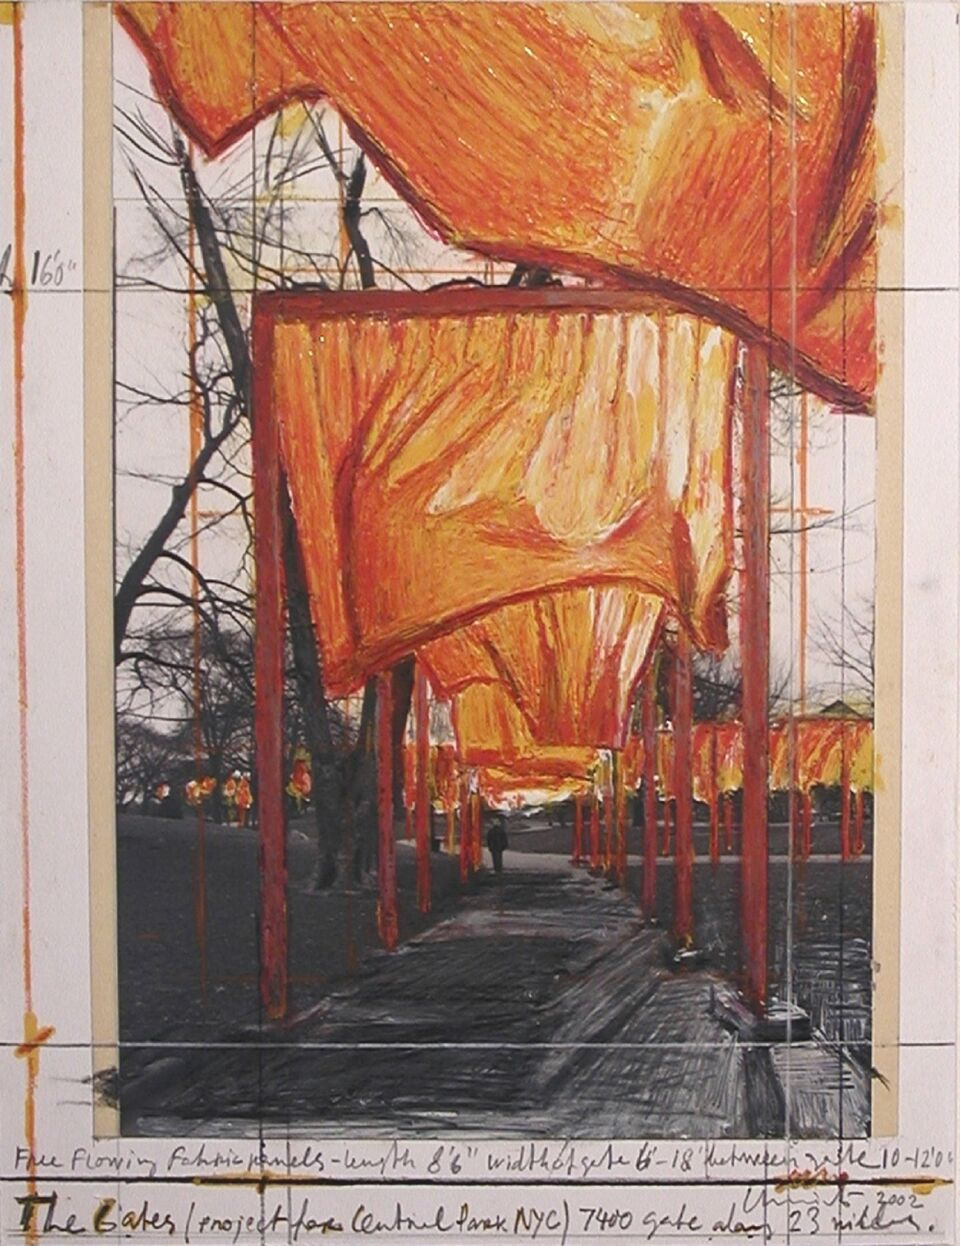 Christo disegno per Floating Piiers